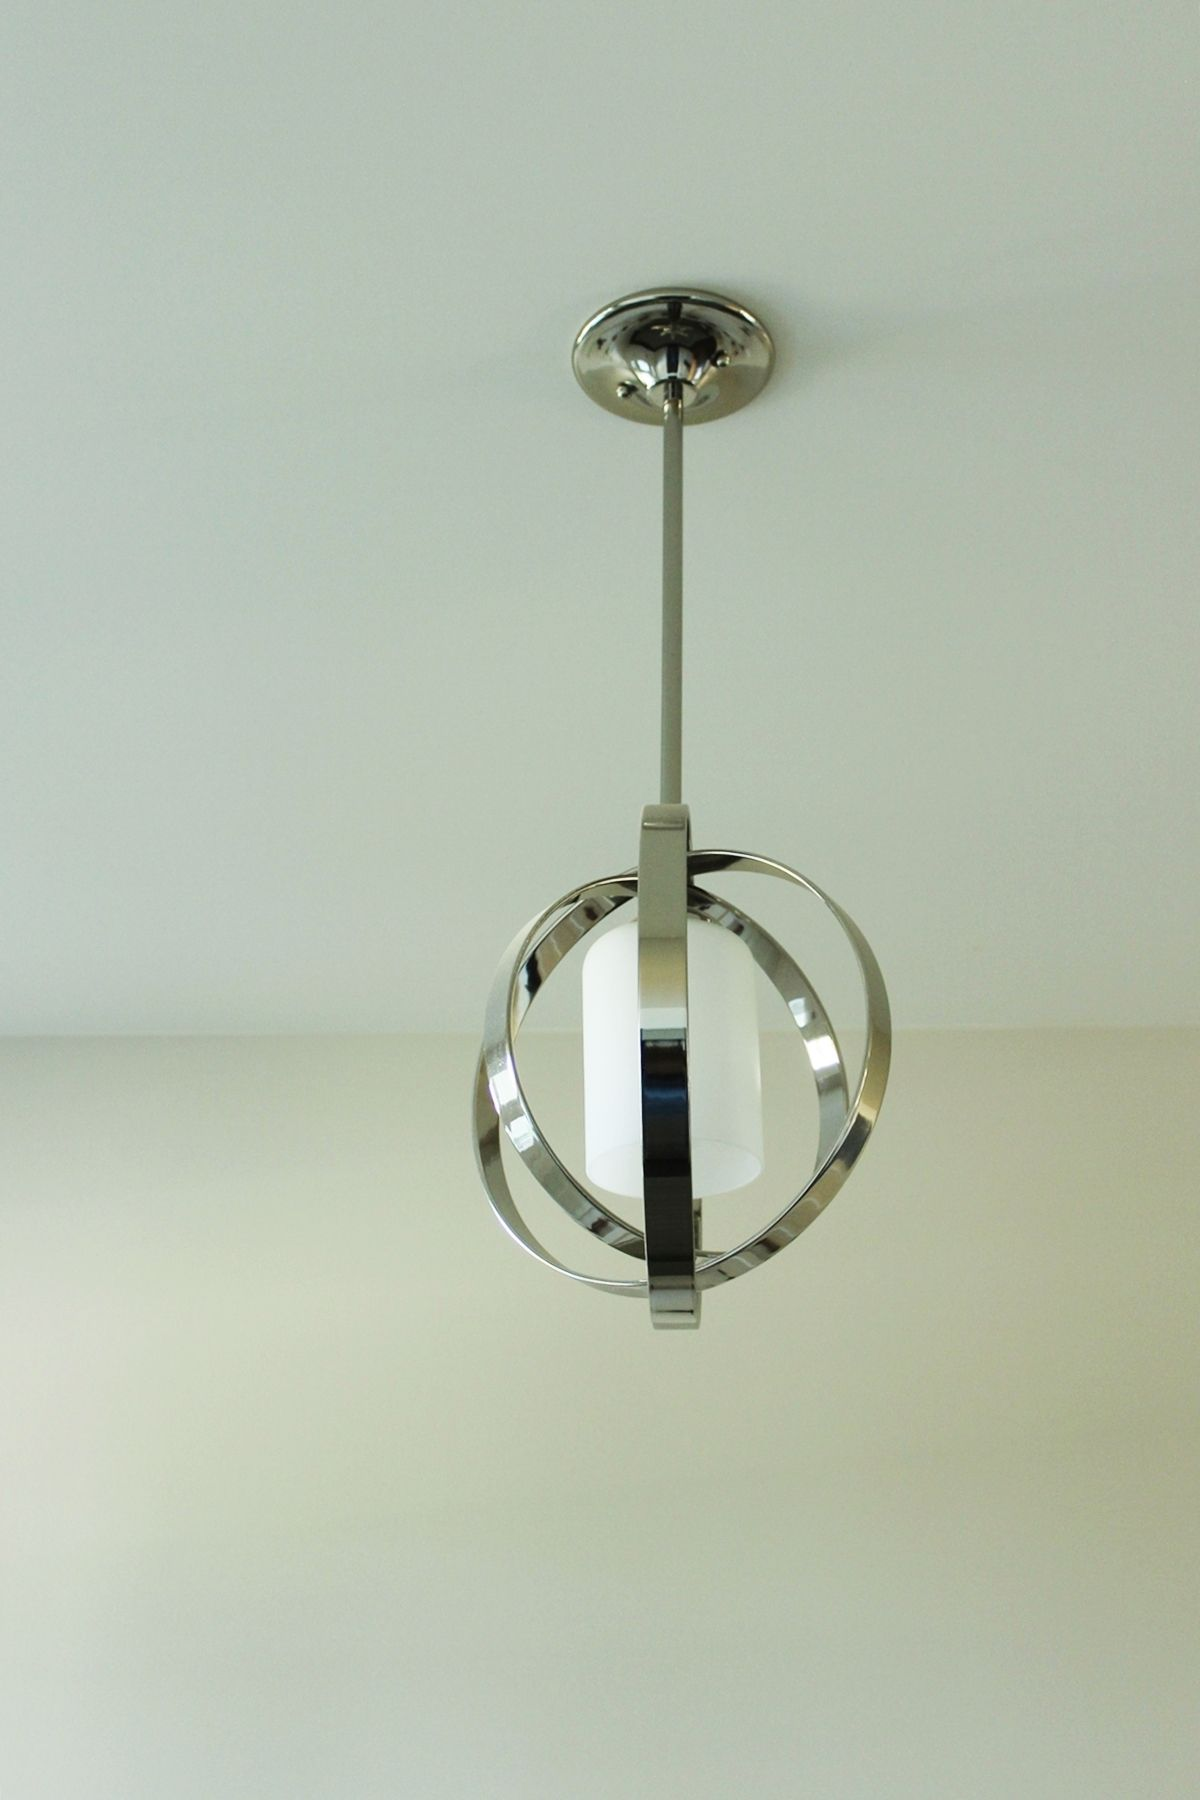 How to Decorate Entryway - simple chrome orb pendant brings